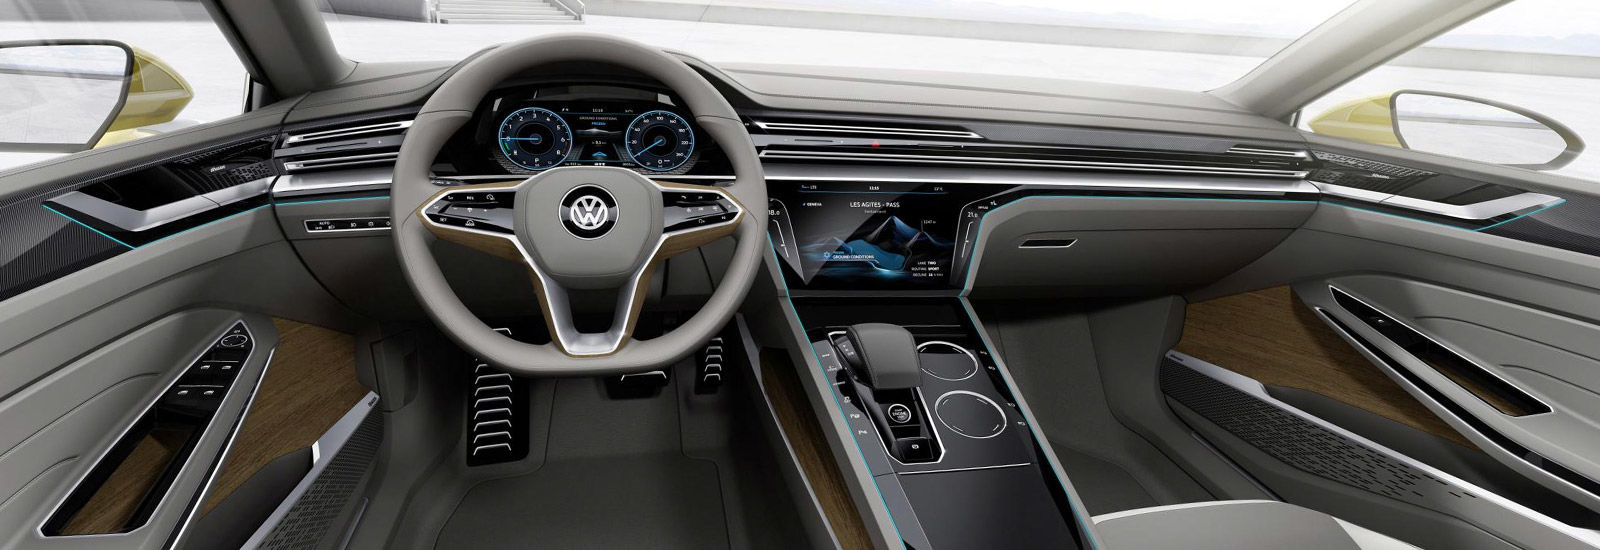 2017 Vw Arteon New Cc Price Specs Release Date Carwow